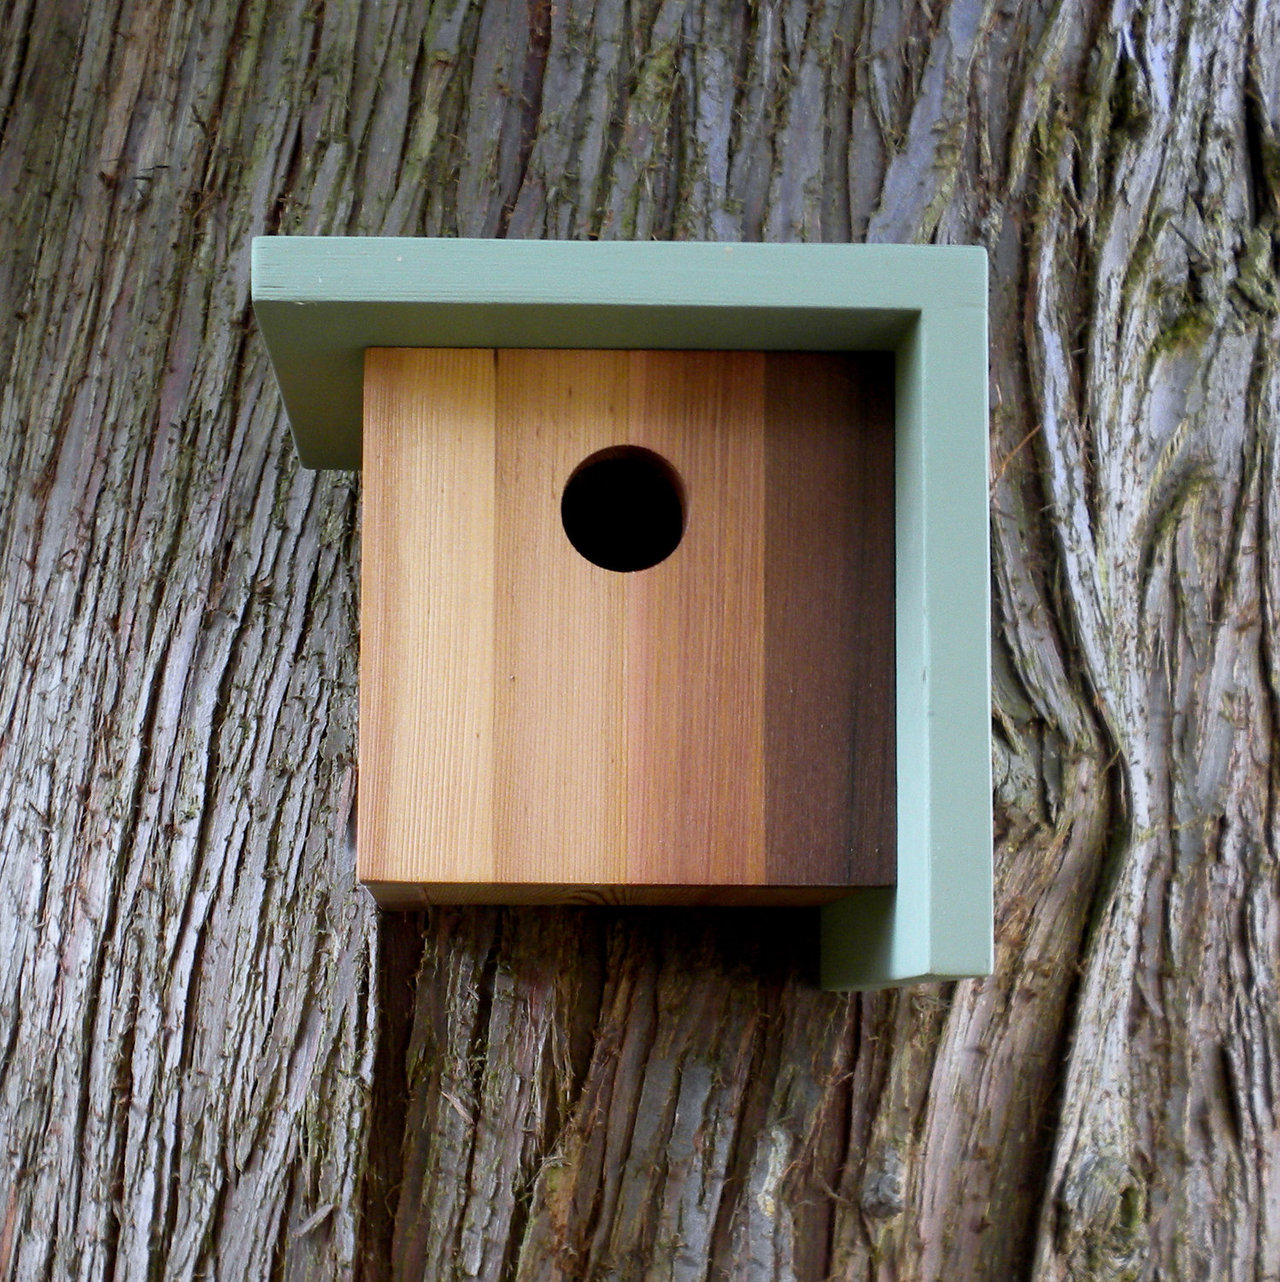 The Right Angle Birdhouse